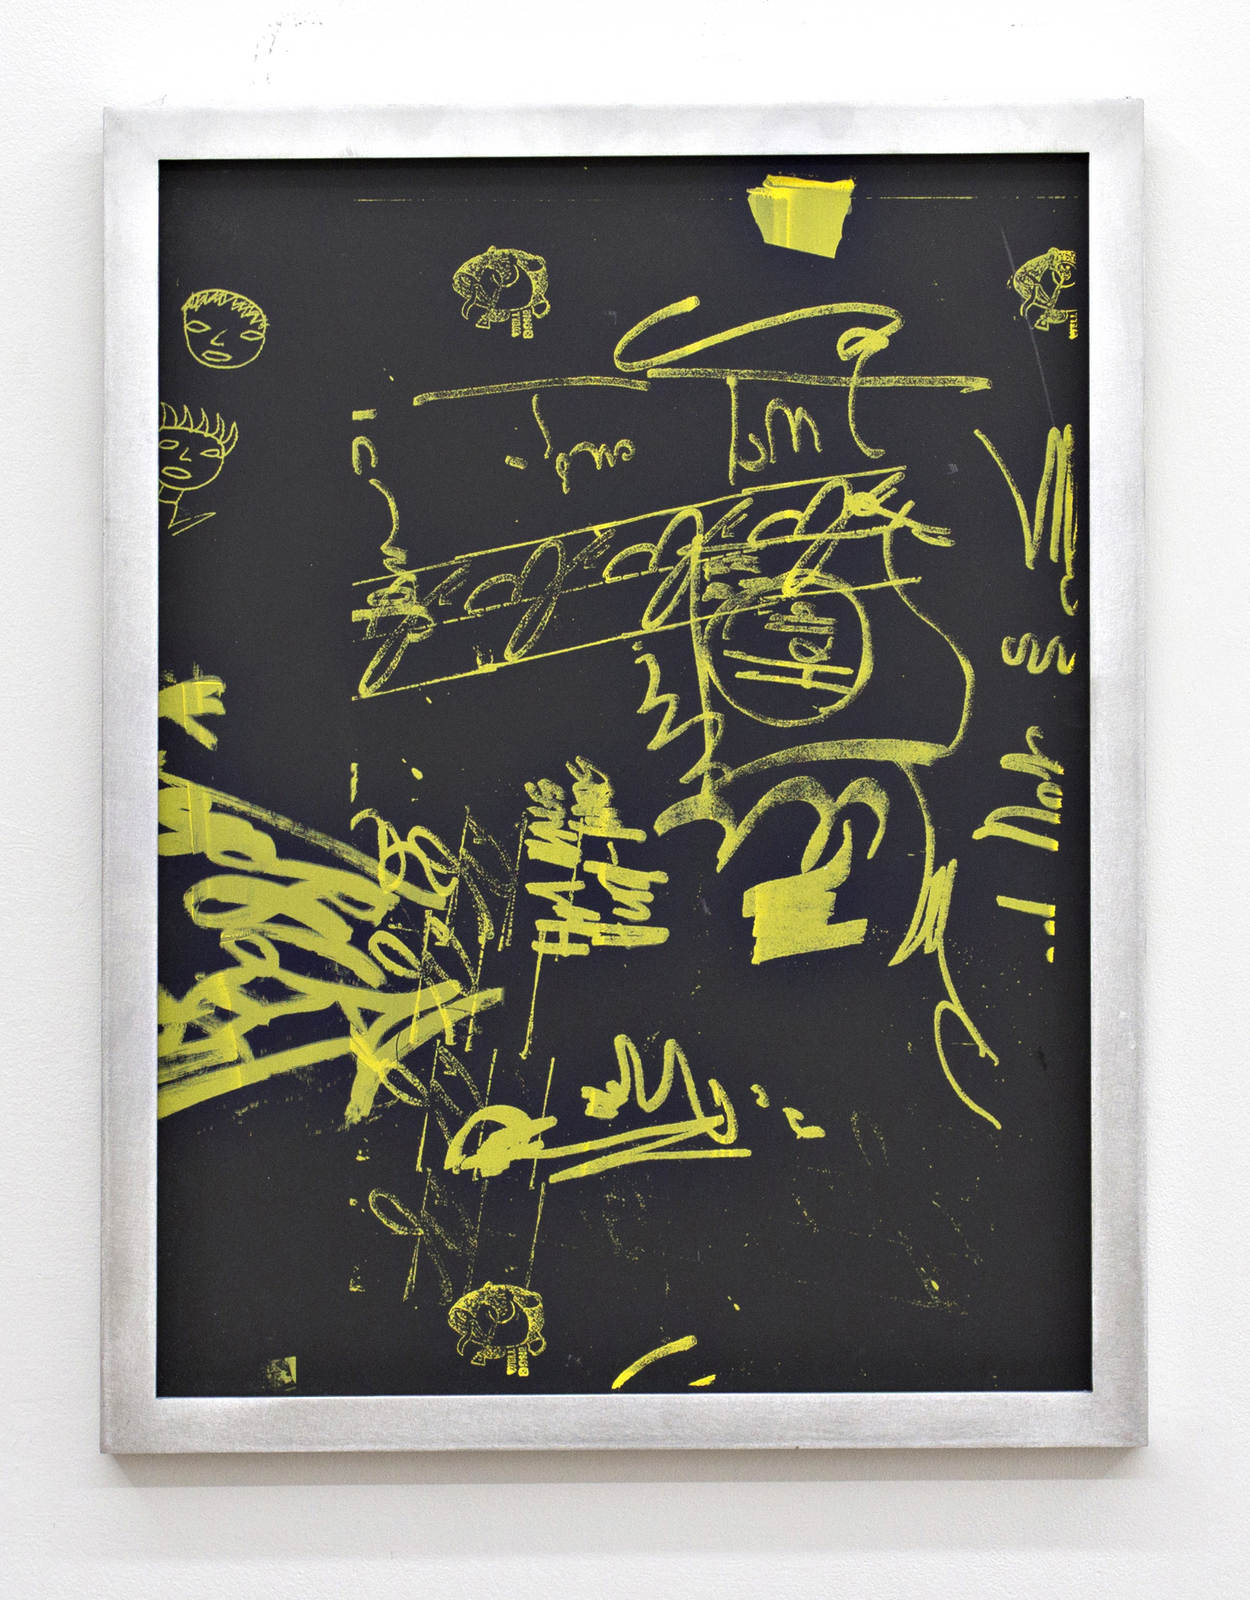 Sofia Leiby, Urinal with Robot